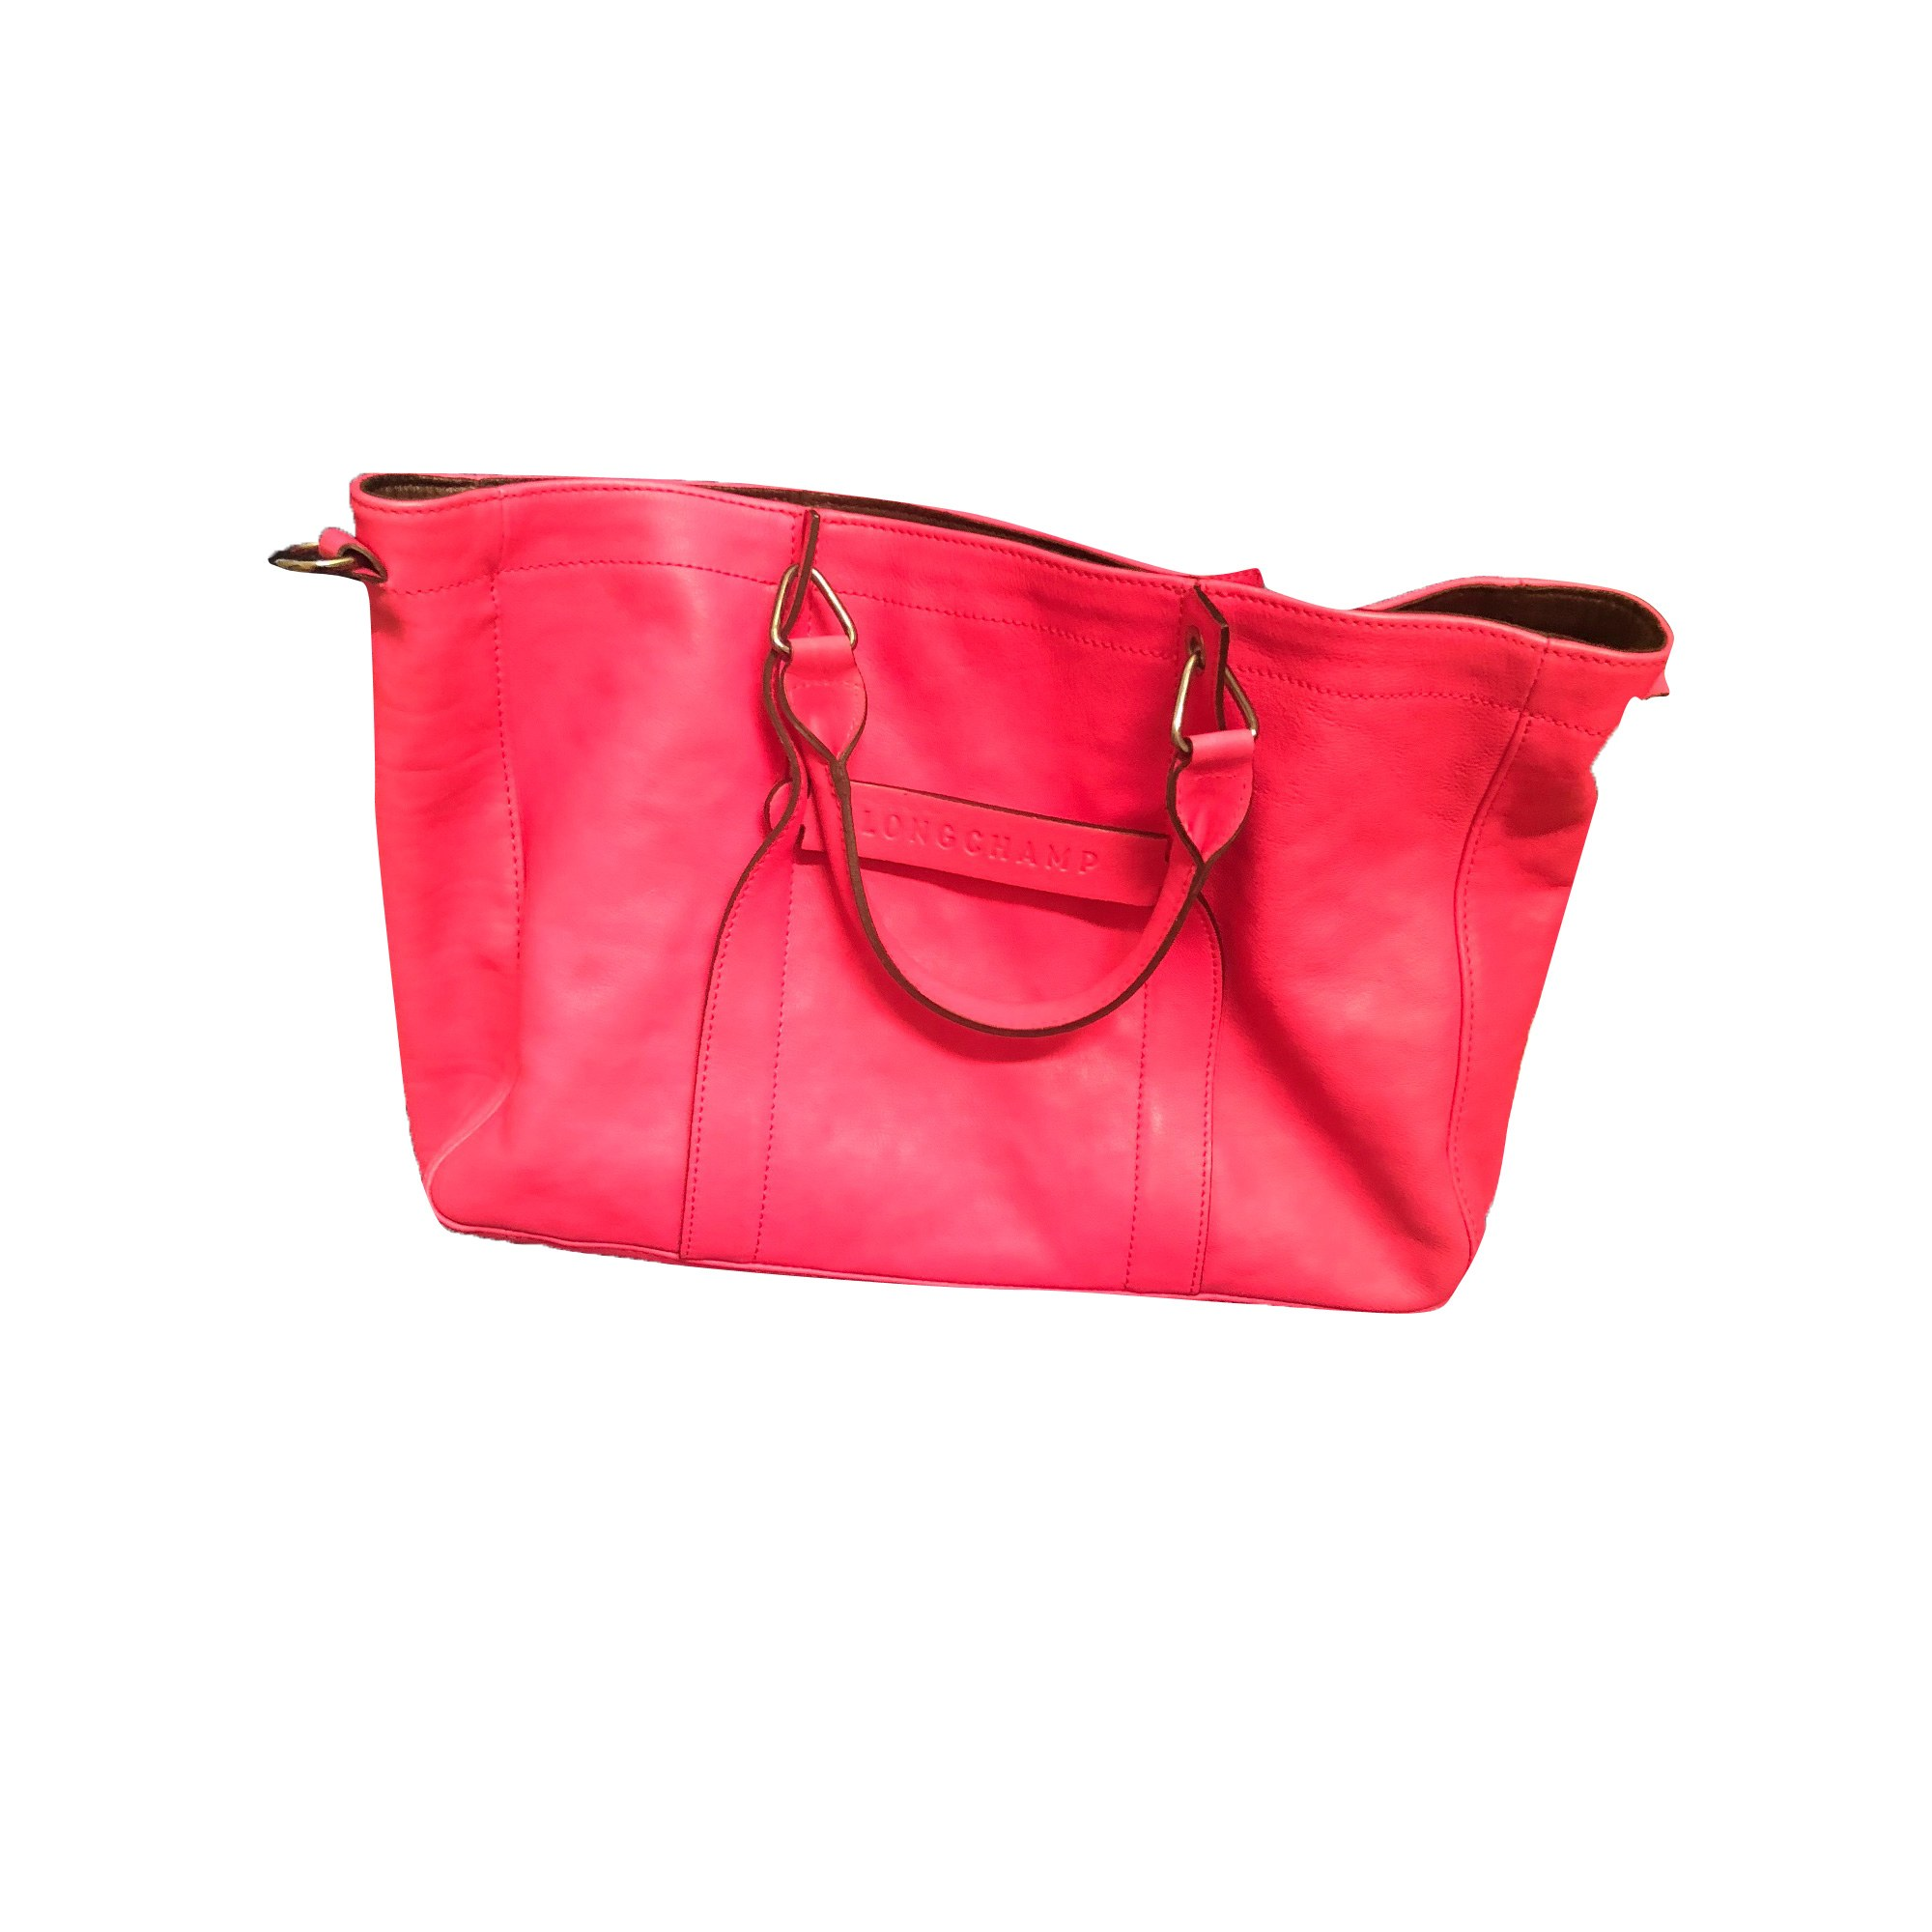 Rose Main Vieux À Cuir Longchamp Rose Sac En Fuschia wv87TH